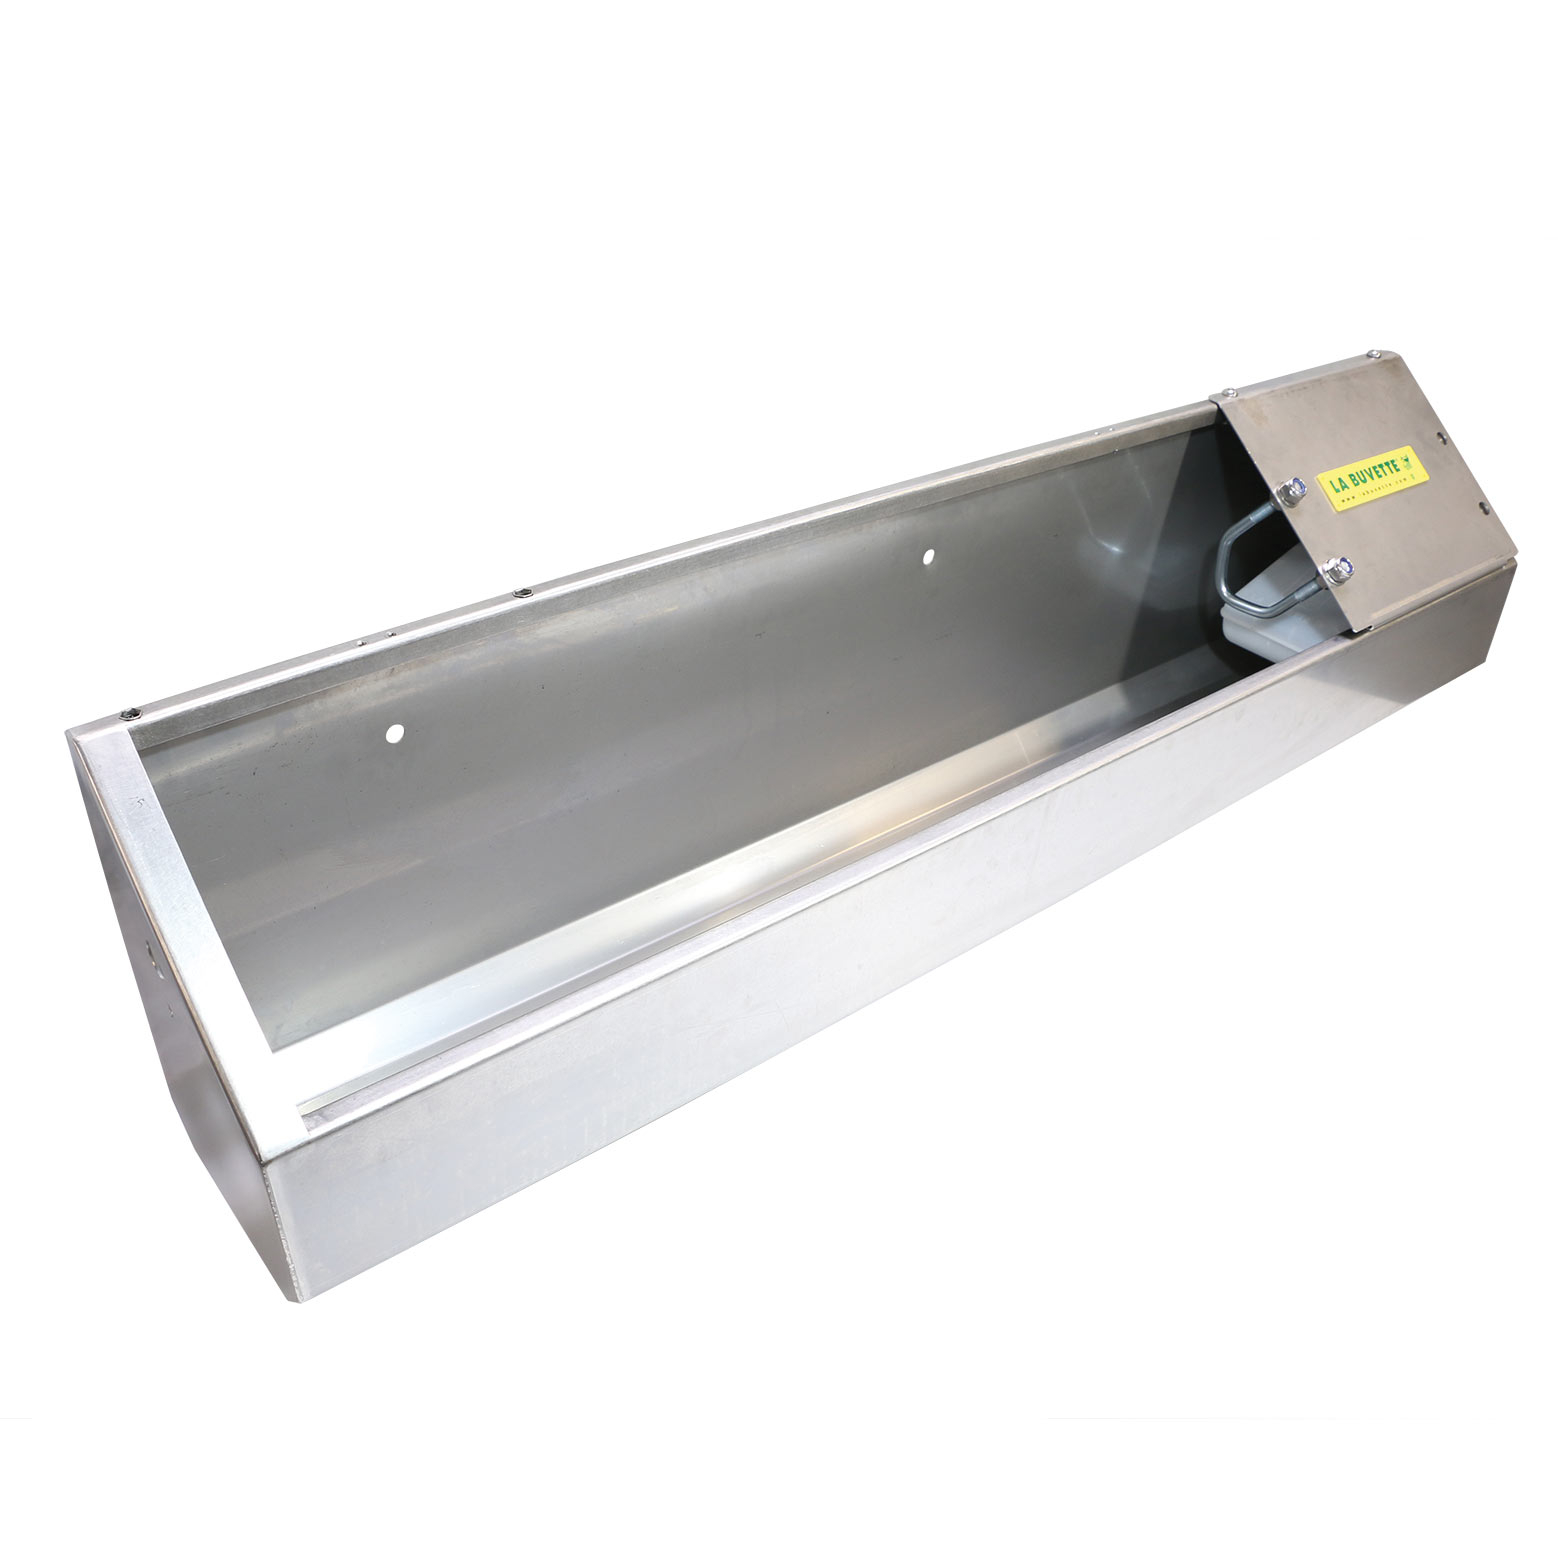 OVICAP INOX 120 Stainless steel DRINKING TROUGH